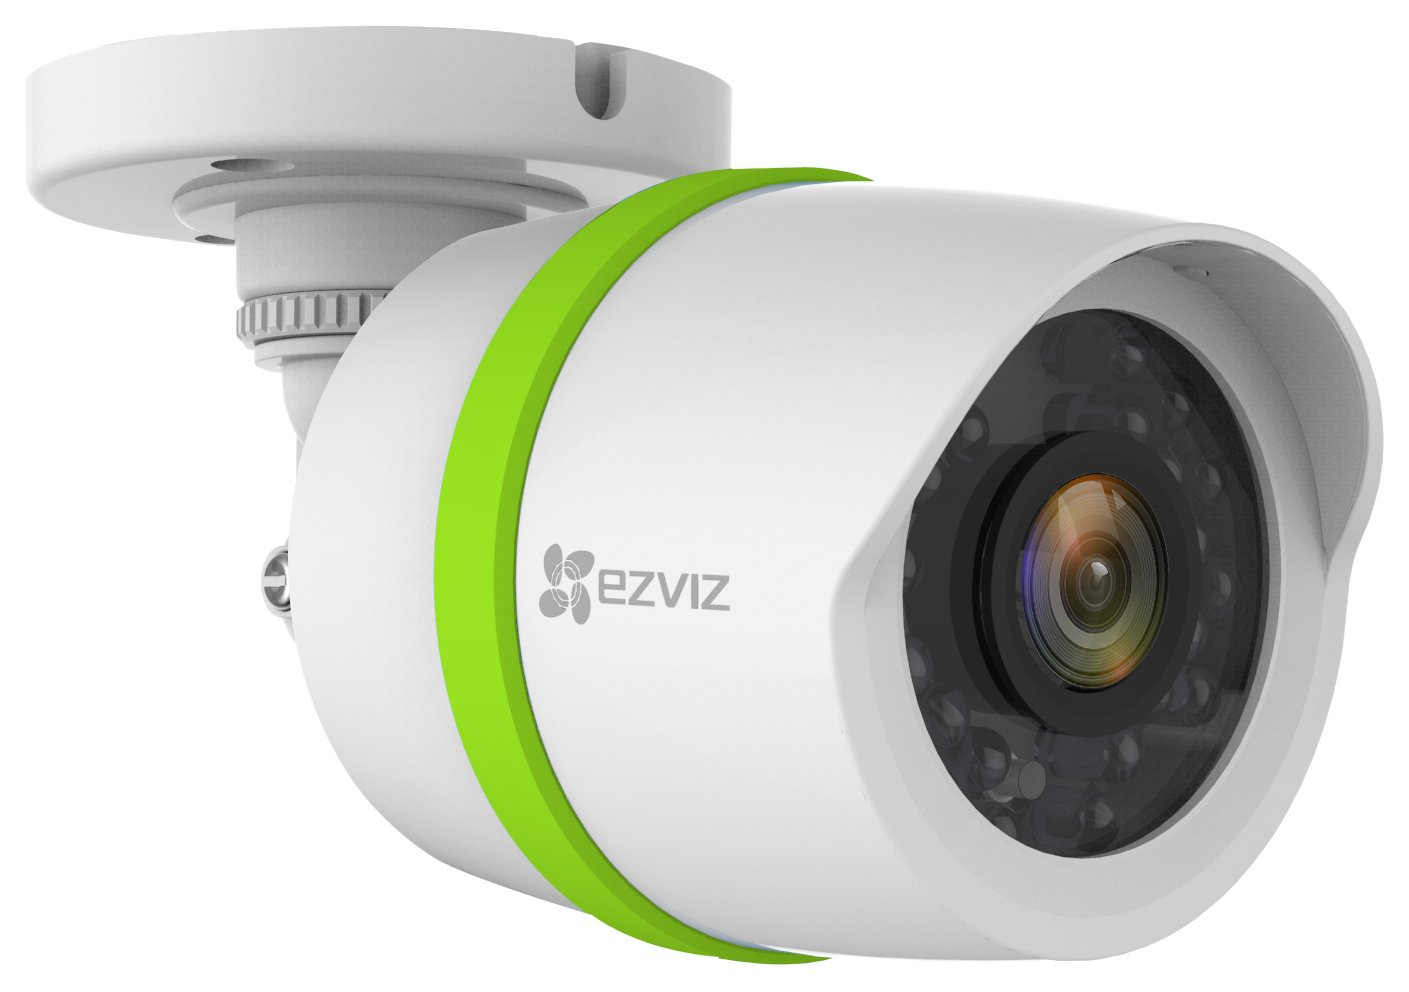 EZVIZ TRIPLE HD 3MP Outdoor Video Security Add-on Bullet Camera, Weatherproof, 100ft Night Vision, Customizable Motion Detection, Included 60ft BNC Cable